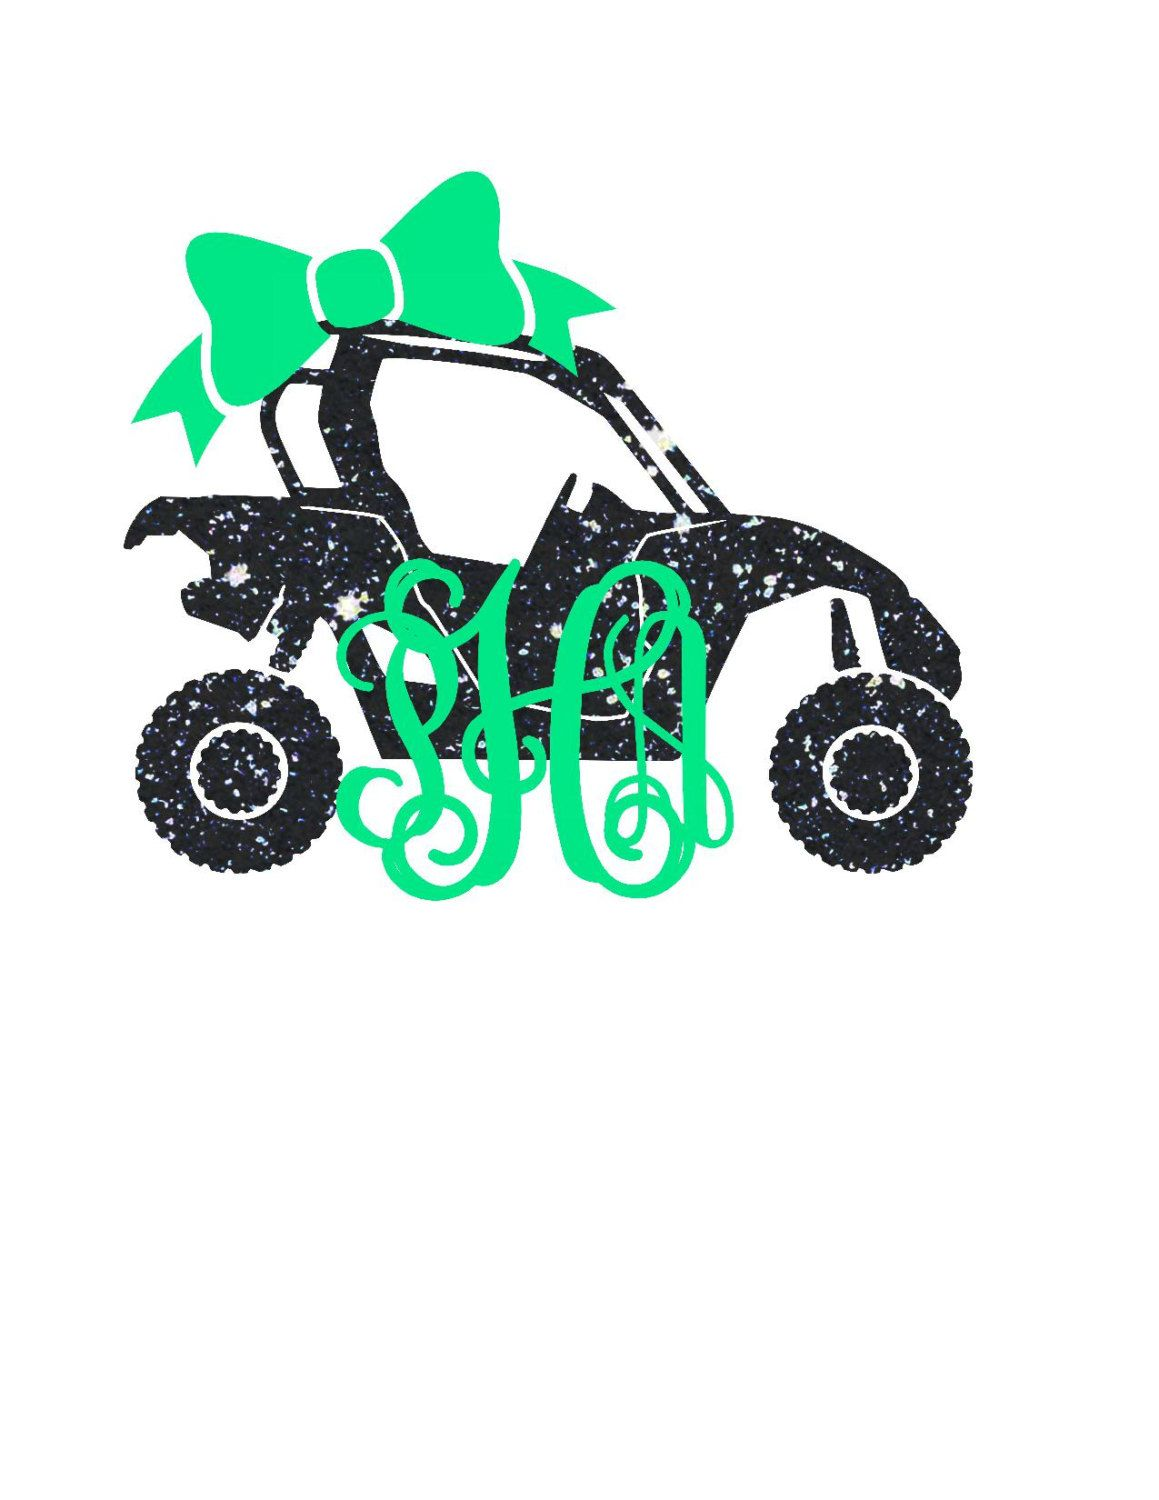 Atv clipart side by side. Monogram decal yeti southern